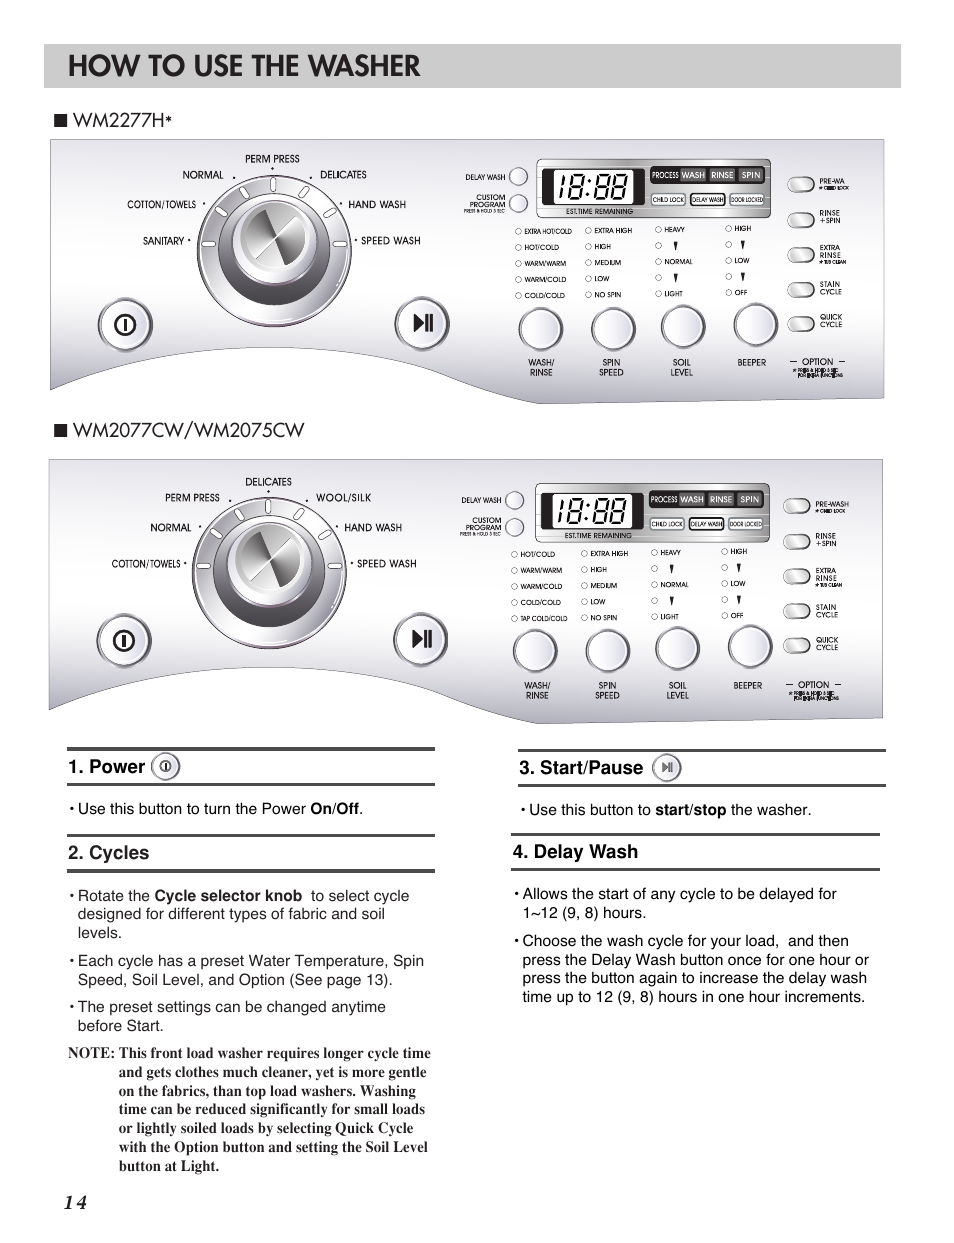 how to use the washer lg wm2277h series user manual page 16 50 rh manualsdir com LG Tromm Steam Washer Dryer Combo LG Washer Owner's Manual